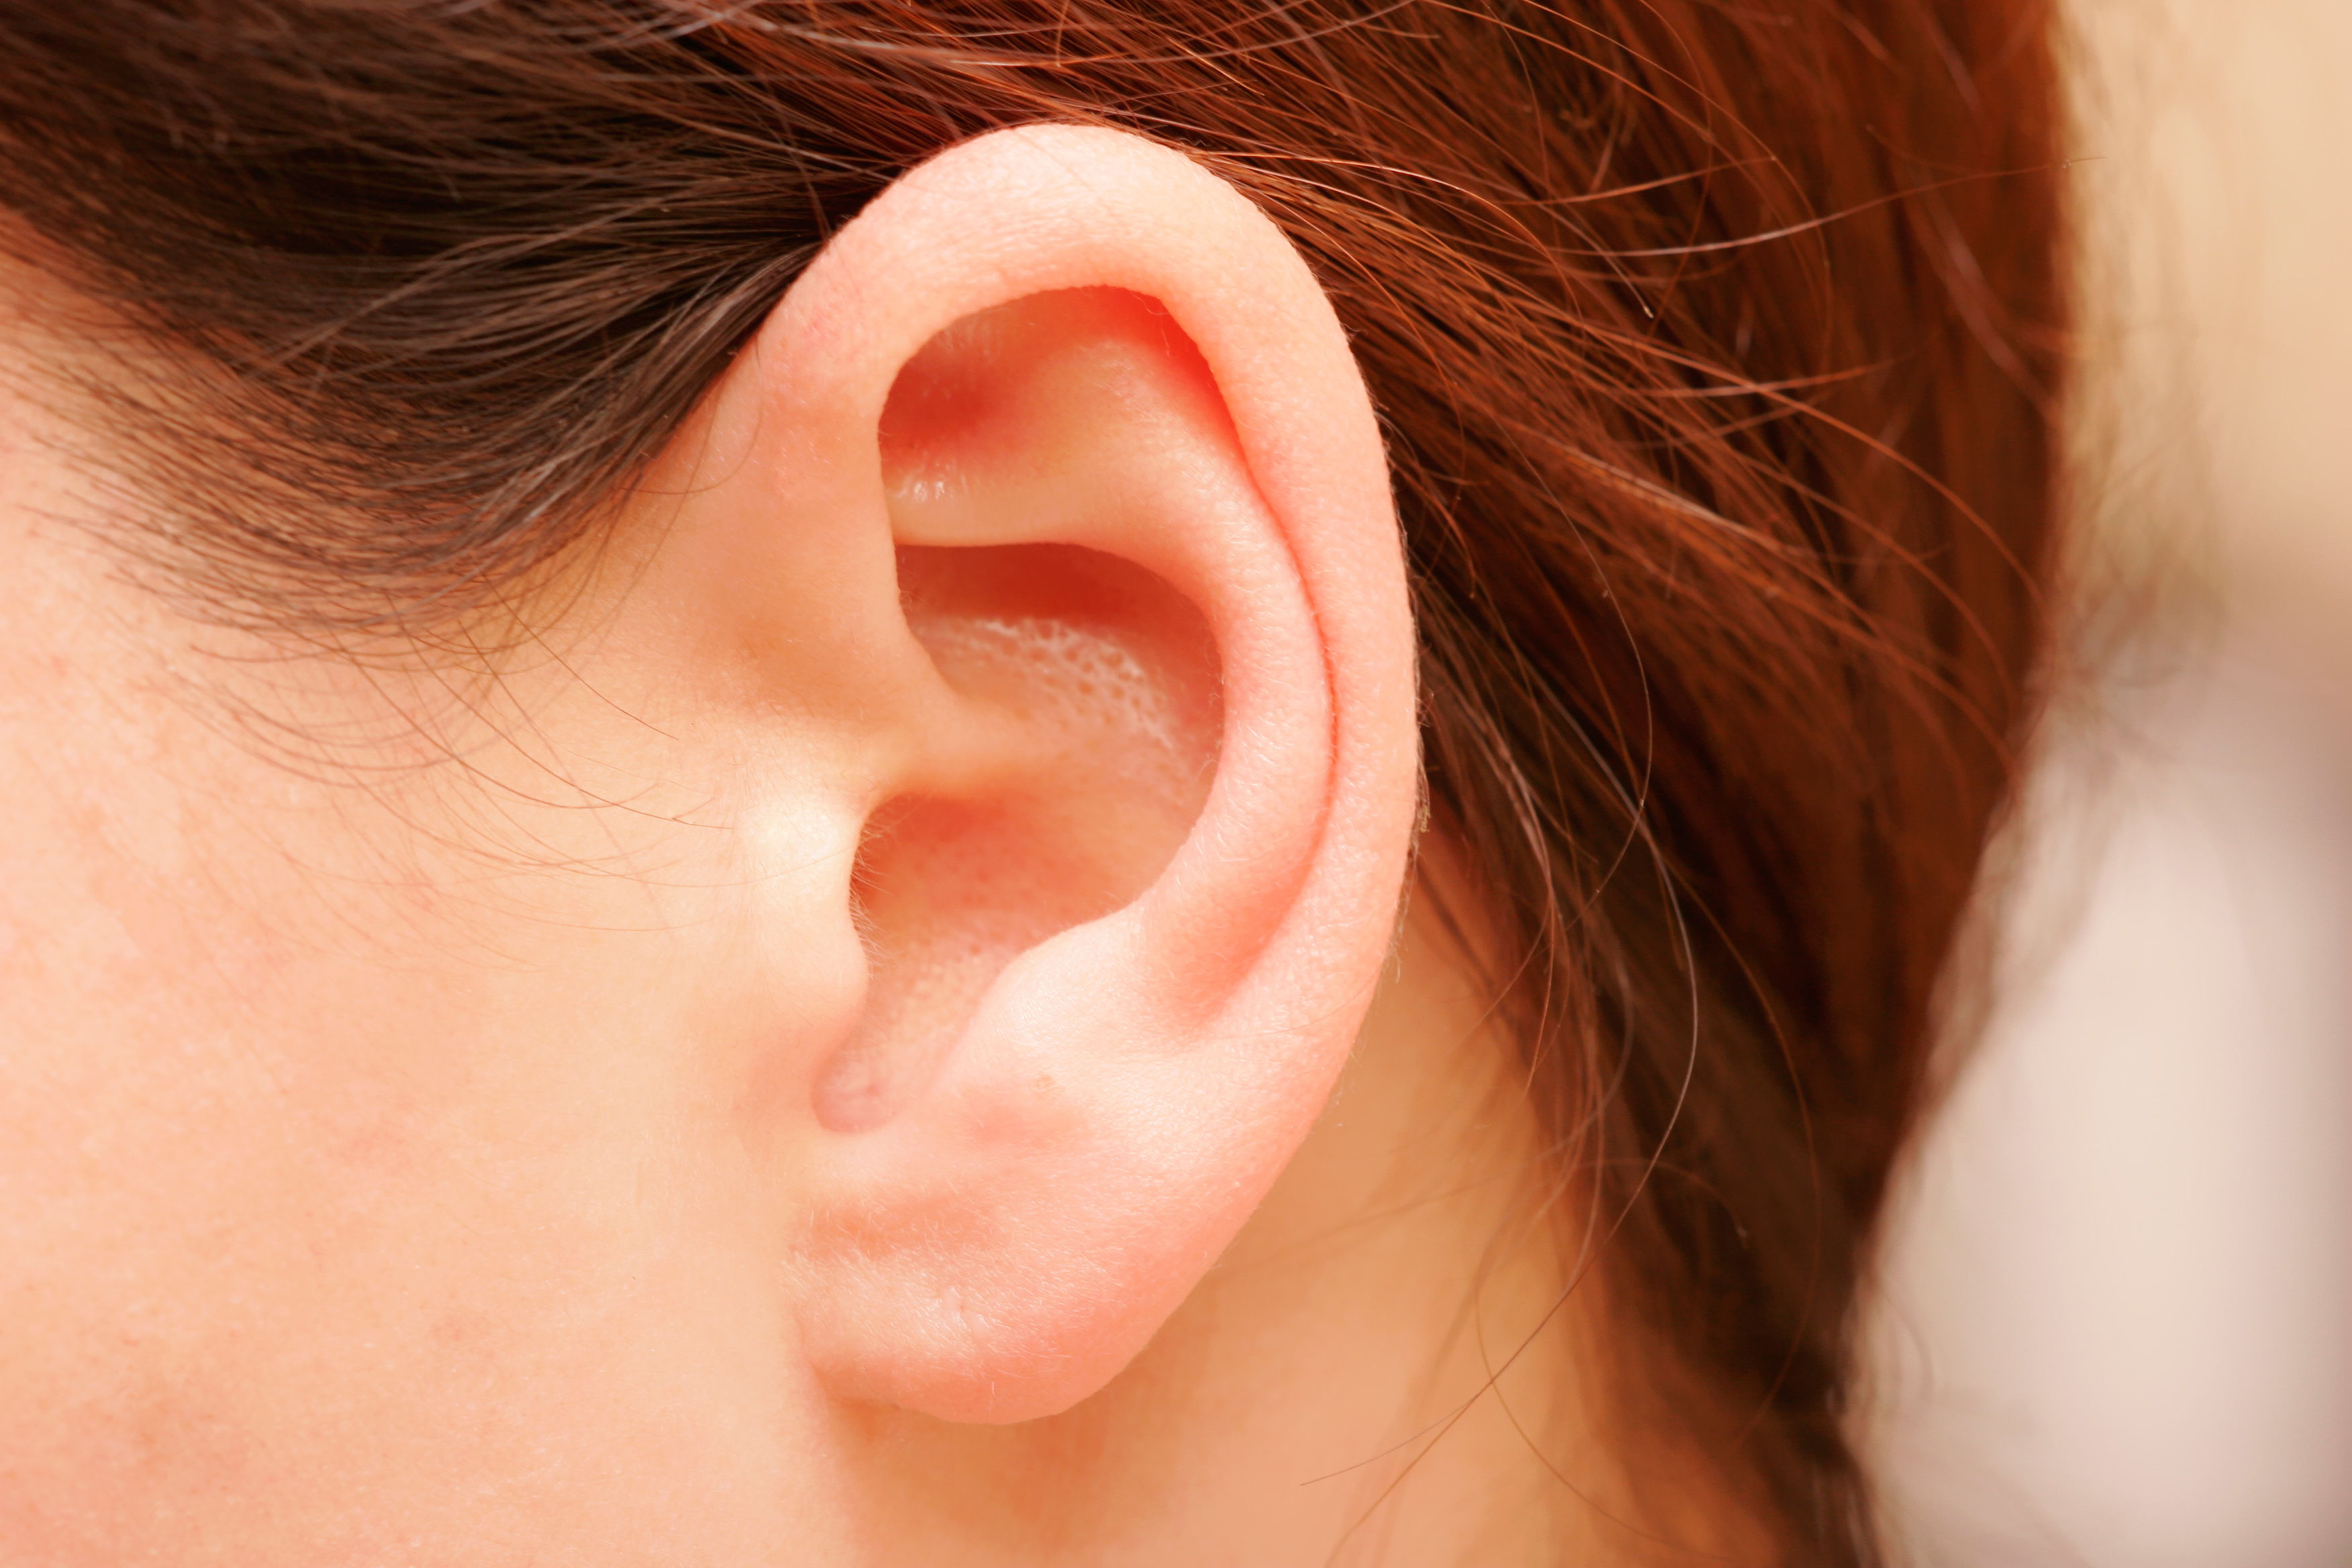 6 Things Your Earwax Says About Your Health